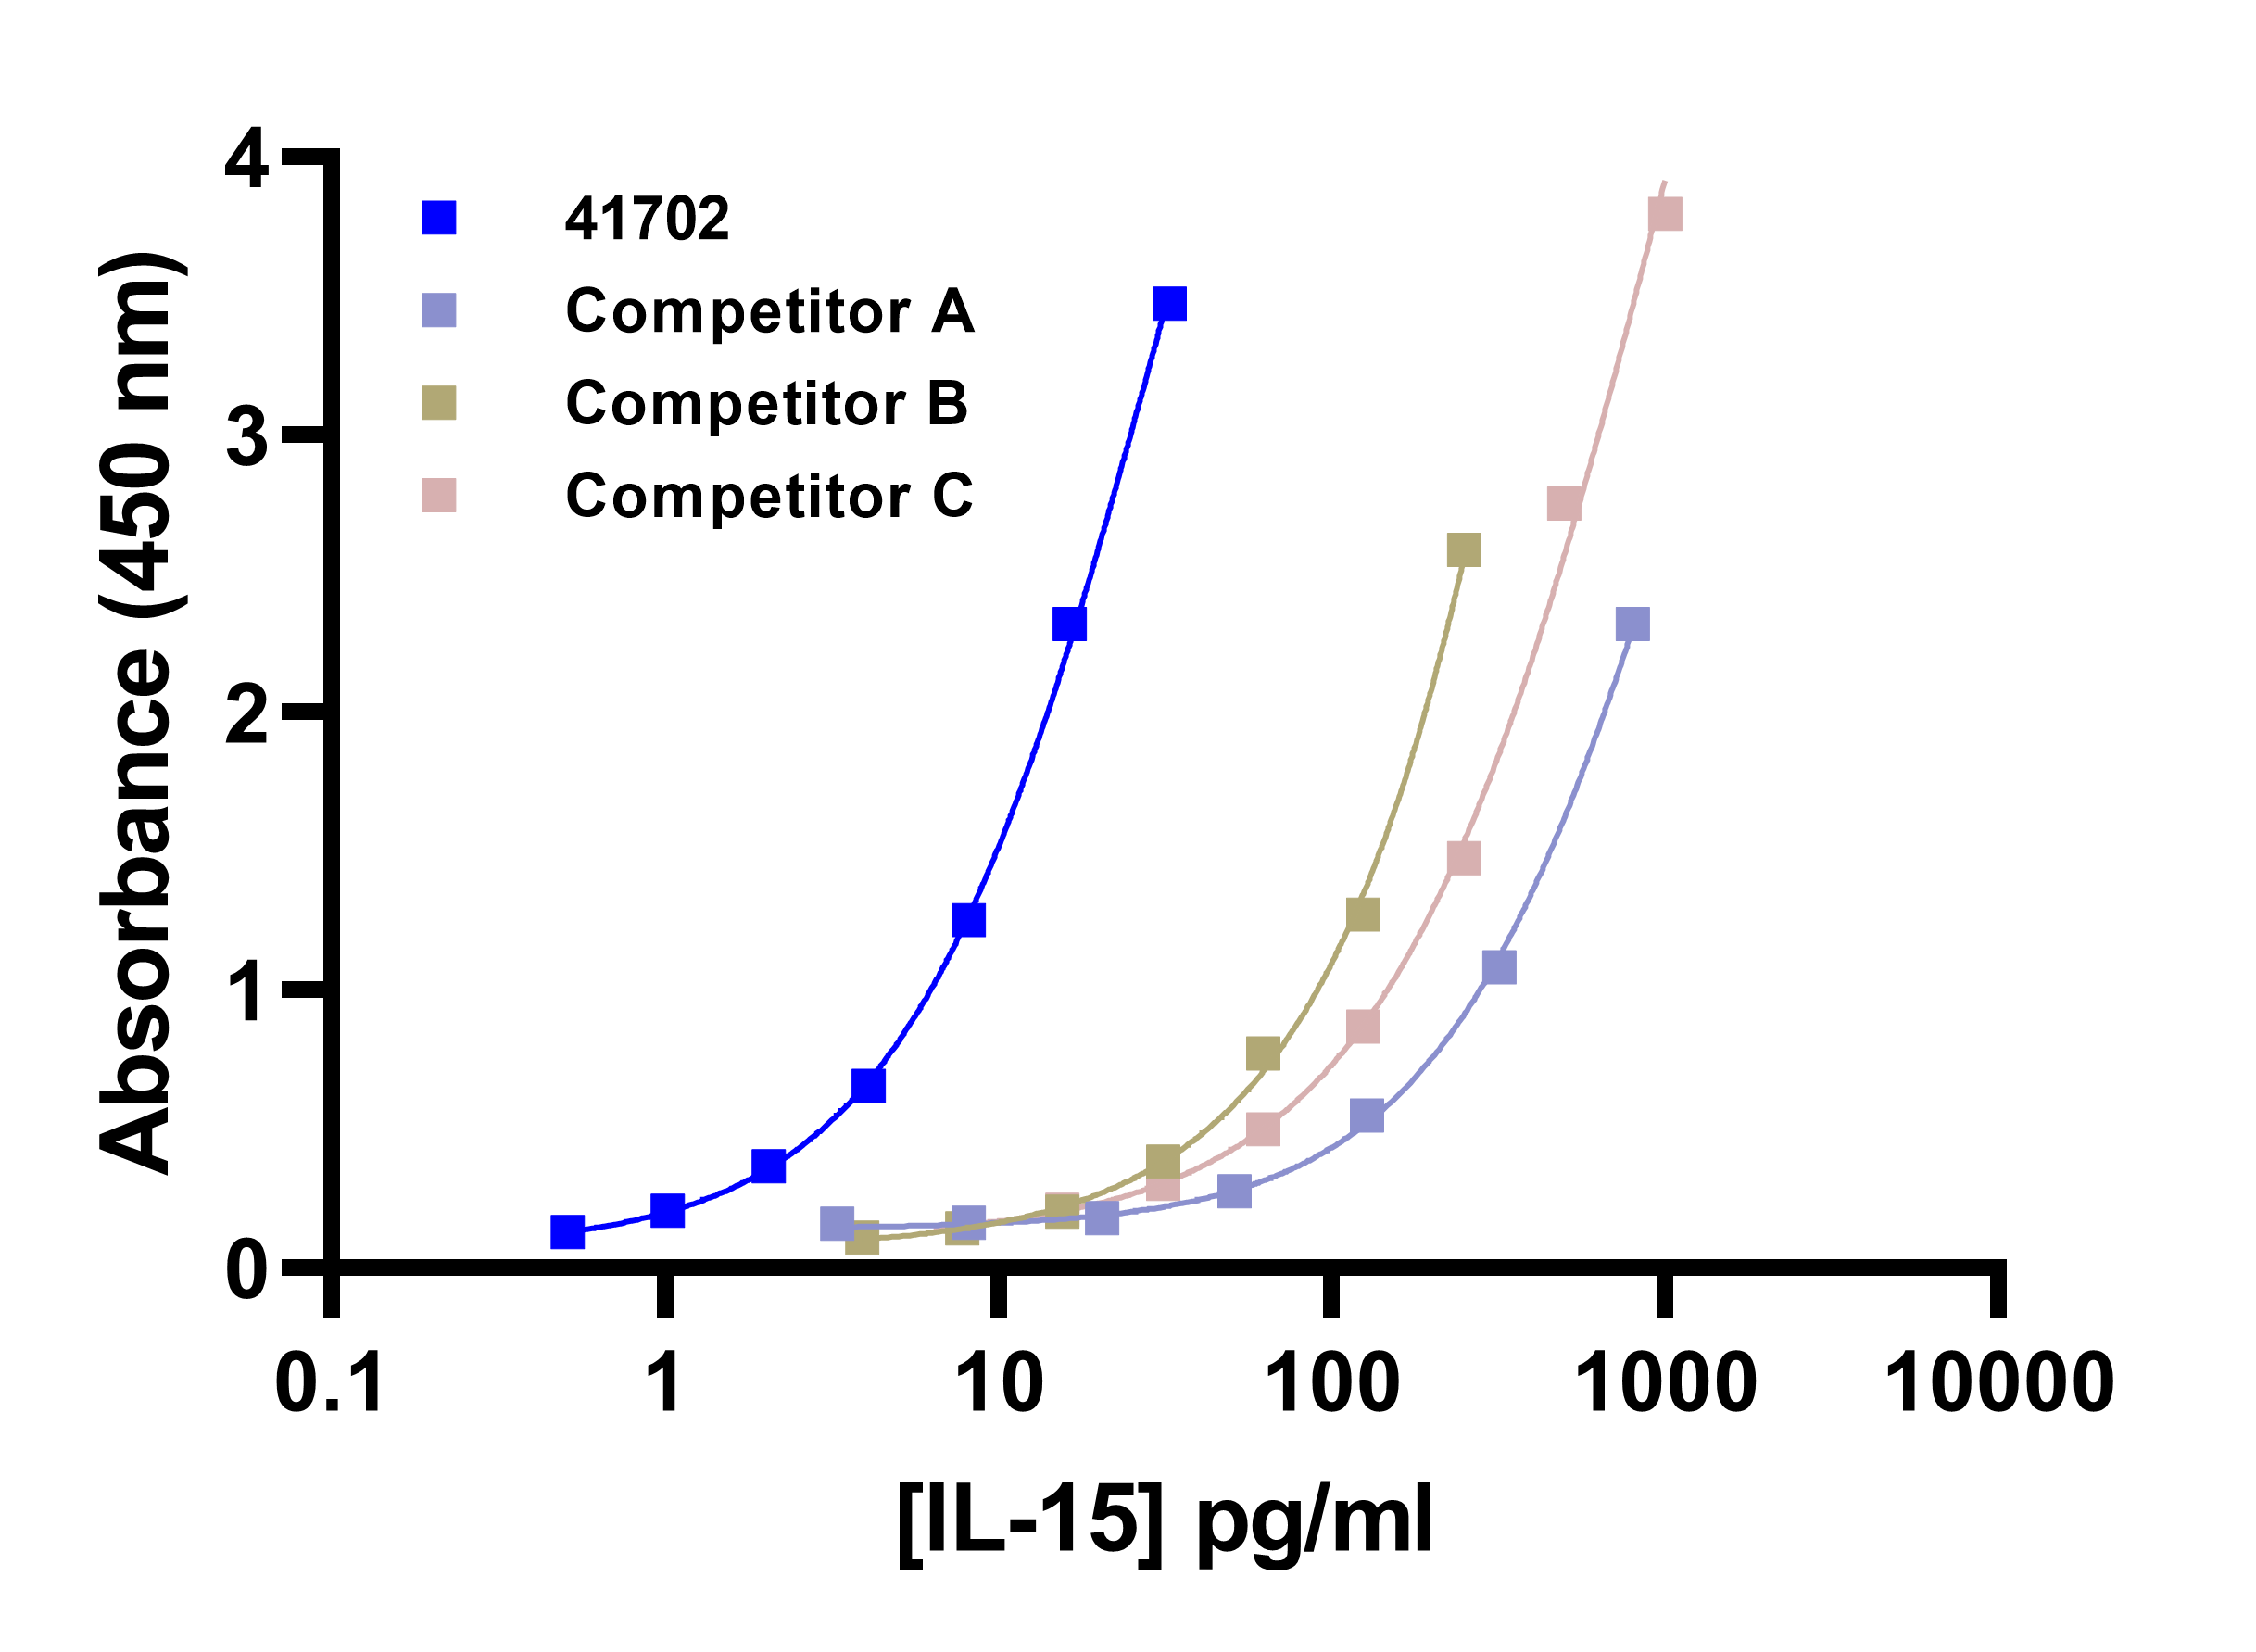 . Dose response curves and absorbance values of all IL-15 standards are shown below. PBL's standard exhibited greater sensitivity than competitive IL-15 standards